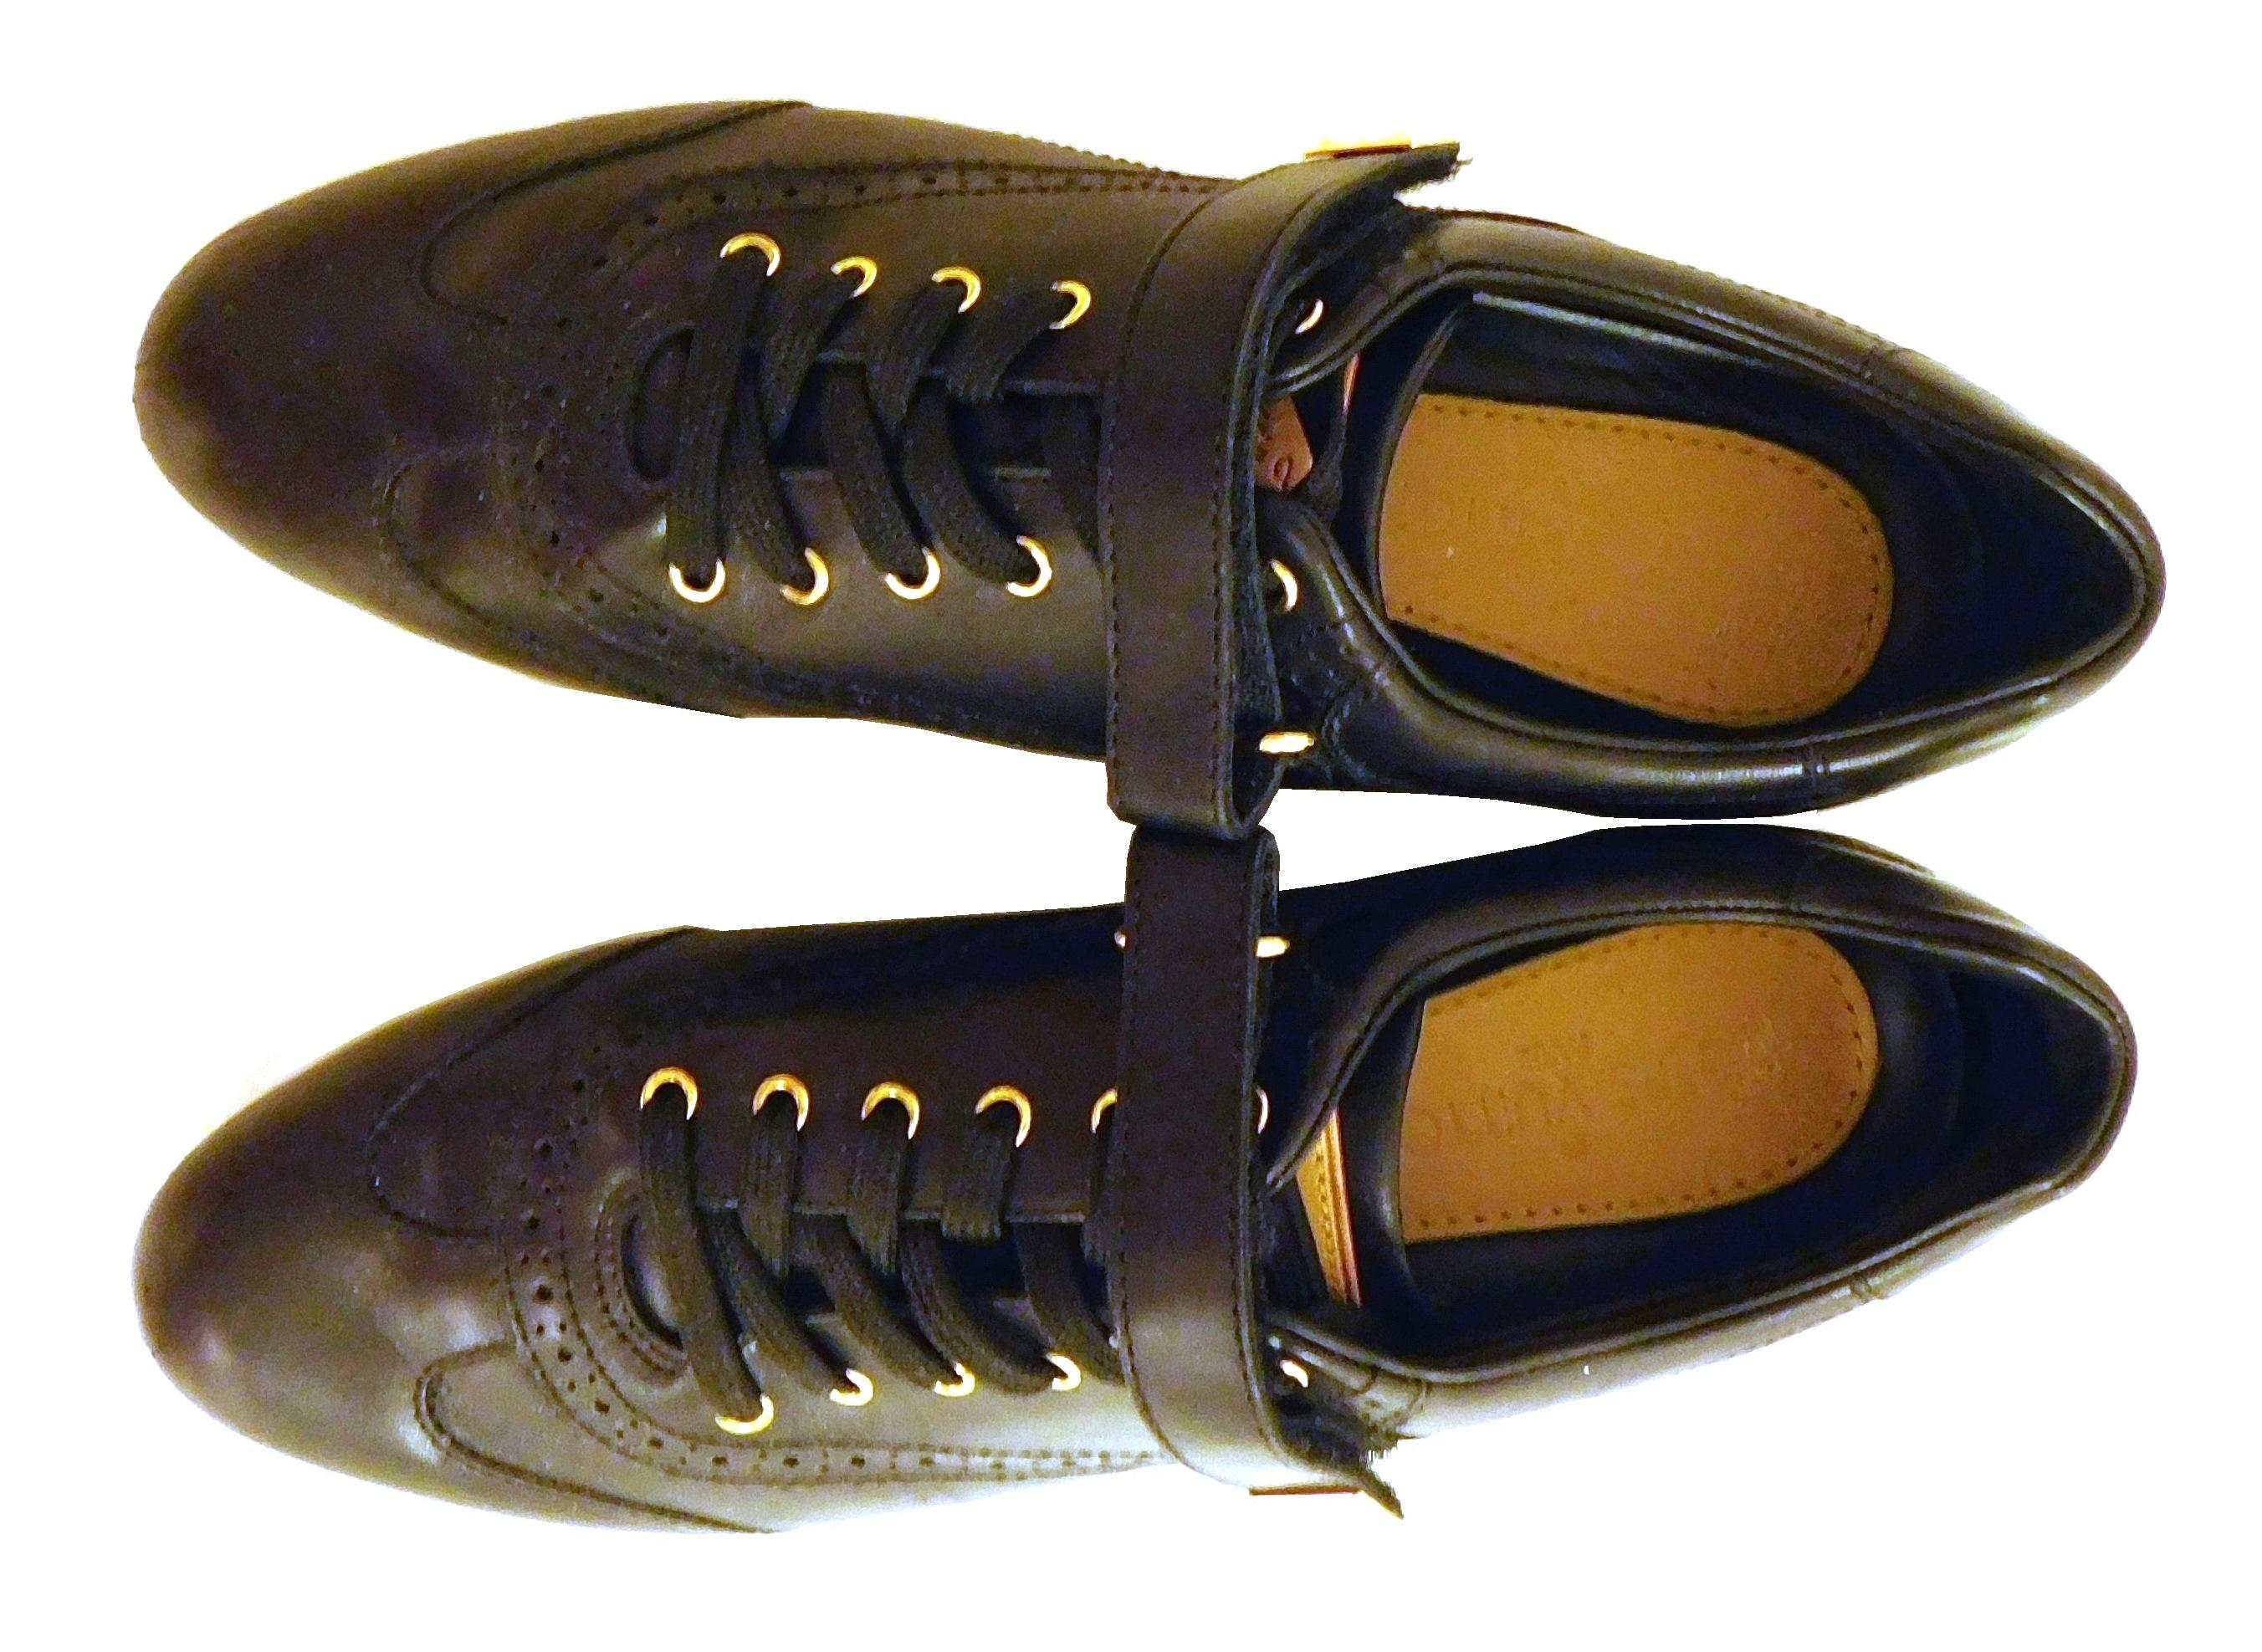 VINTAGE CLOTHING: Louis Vuitton black patent leather women's sneakers, size 37, wing-tip design and velcro strap with gold fastner a..